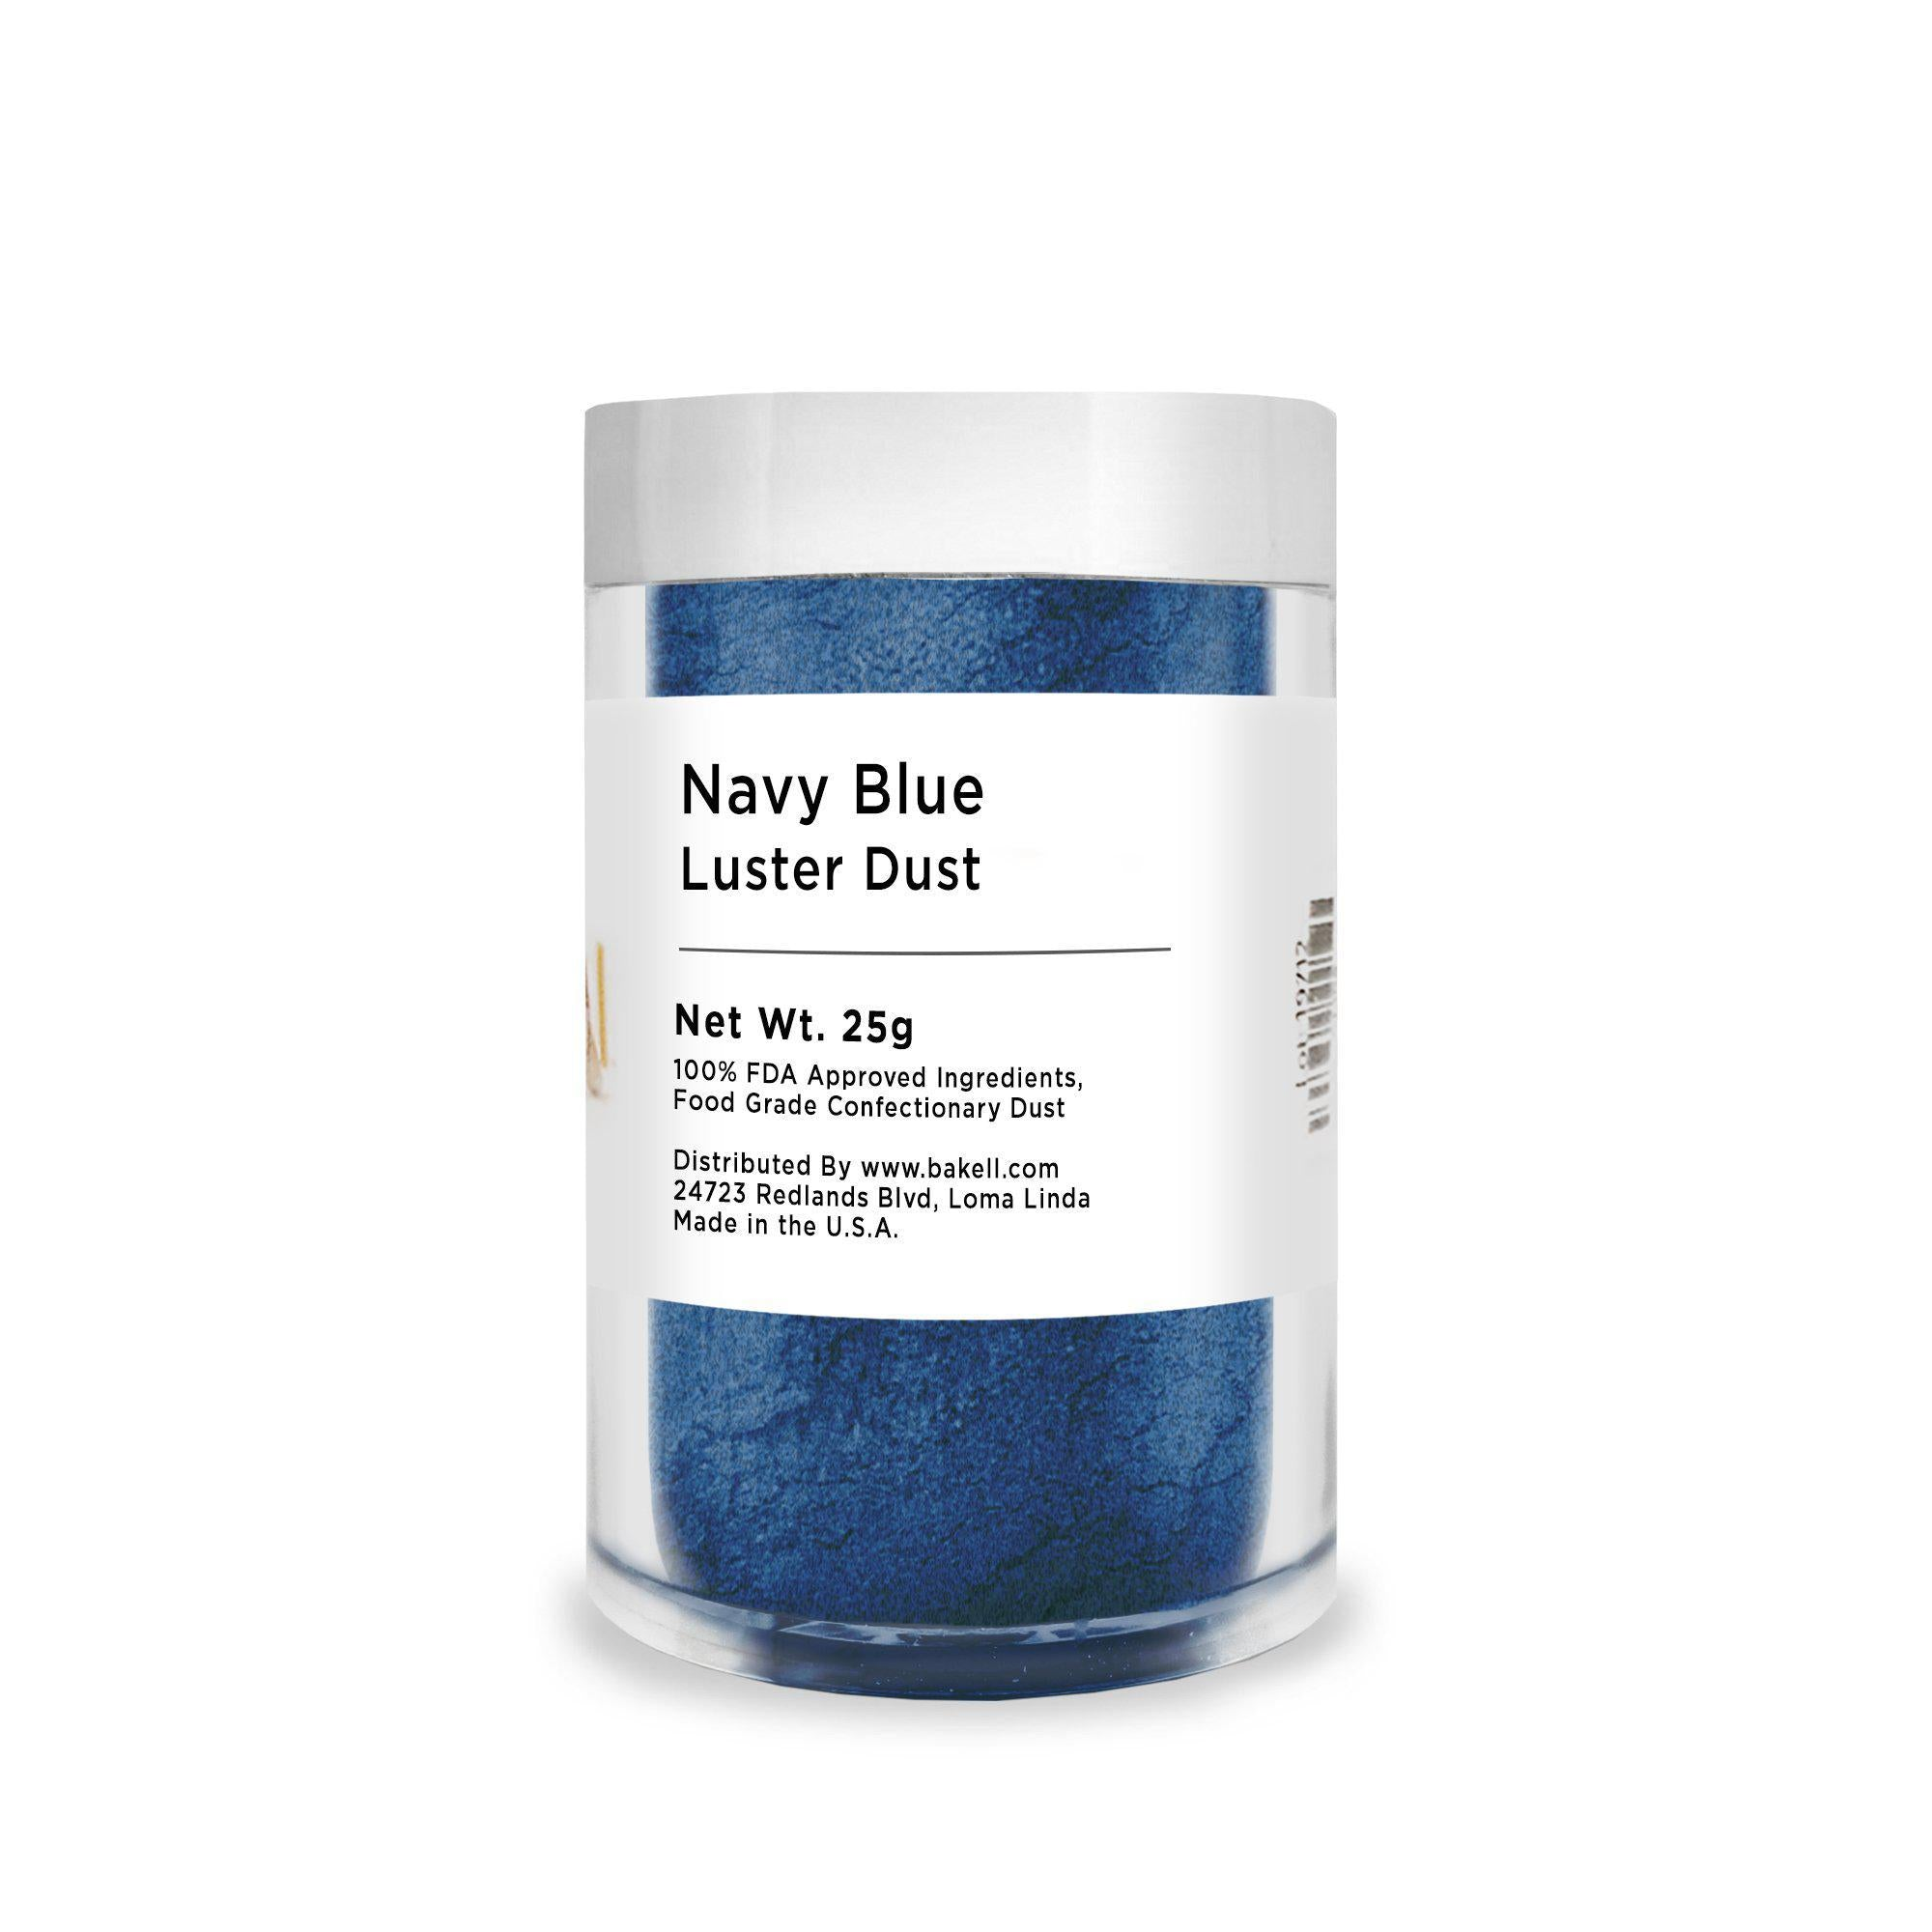 Navy Blue Edible Luster Dust | FDA Approved Glitter & Kosher Certified Glitter | Edible Paint | MICA Powder | Bakell.com